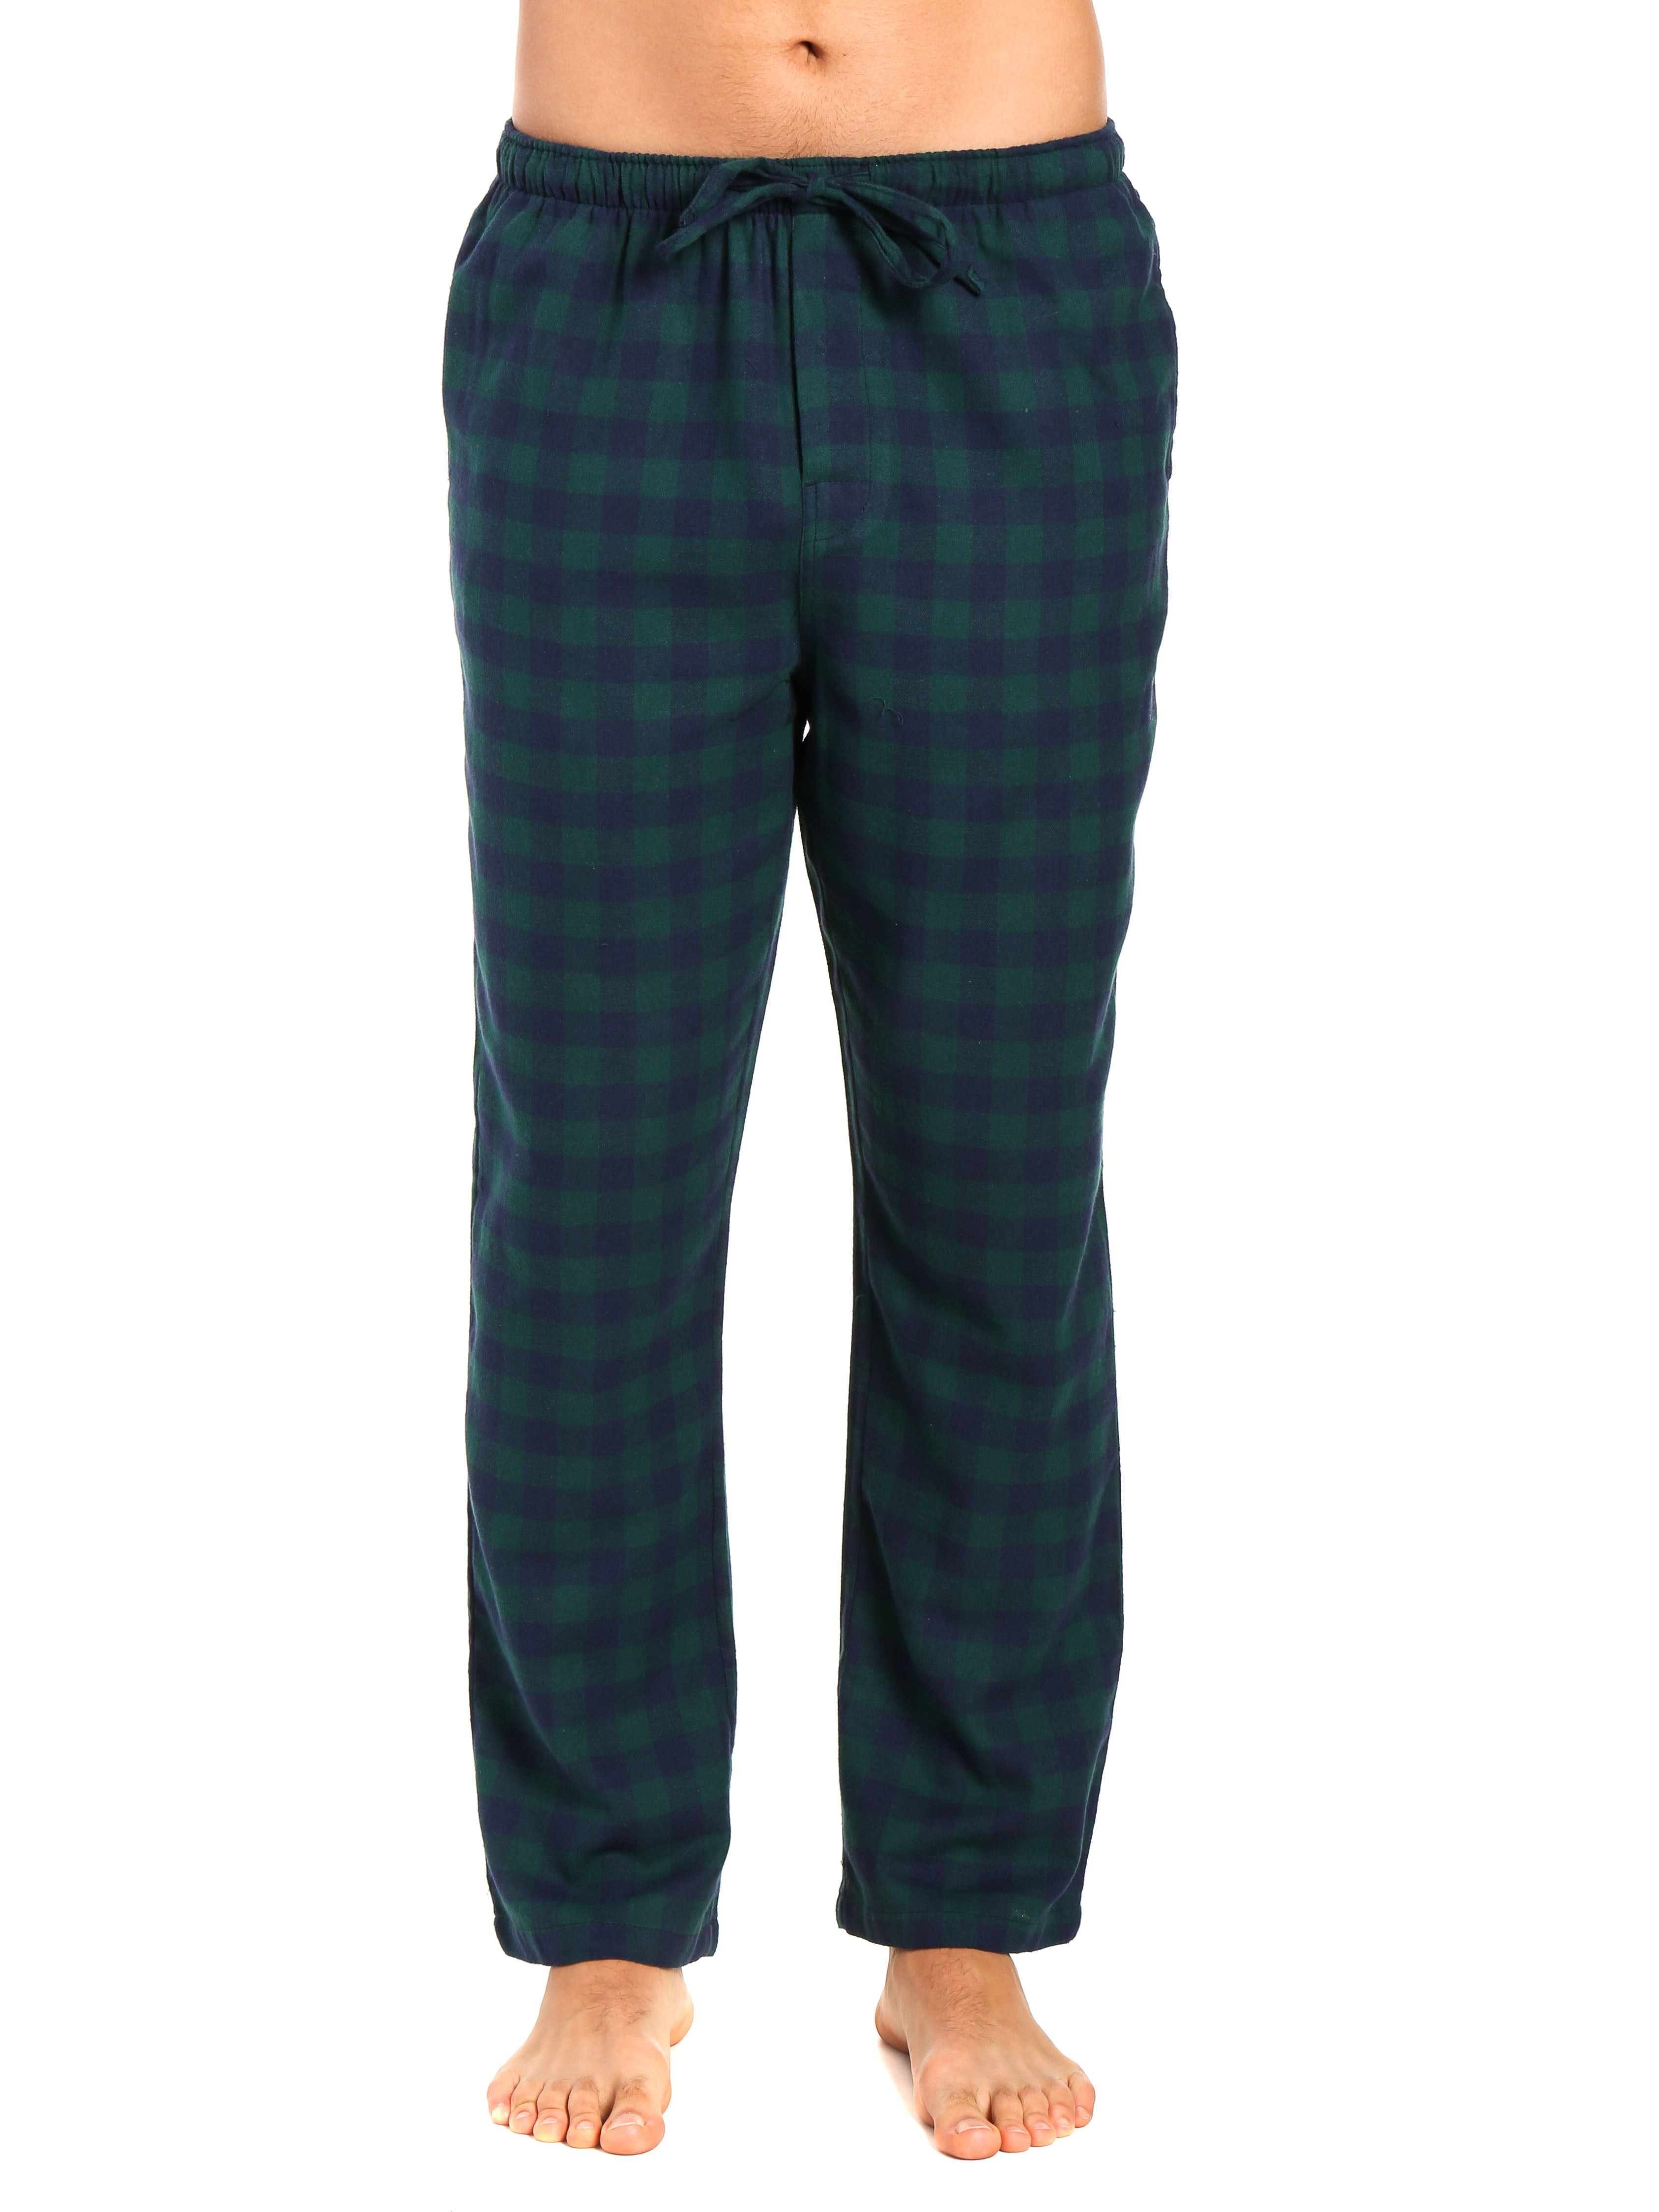 Men's 100% Cotton Flannel Lounge Pants - Gingham Navy-Green